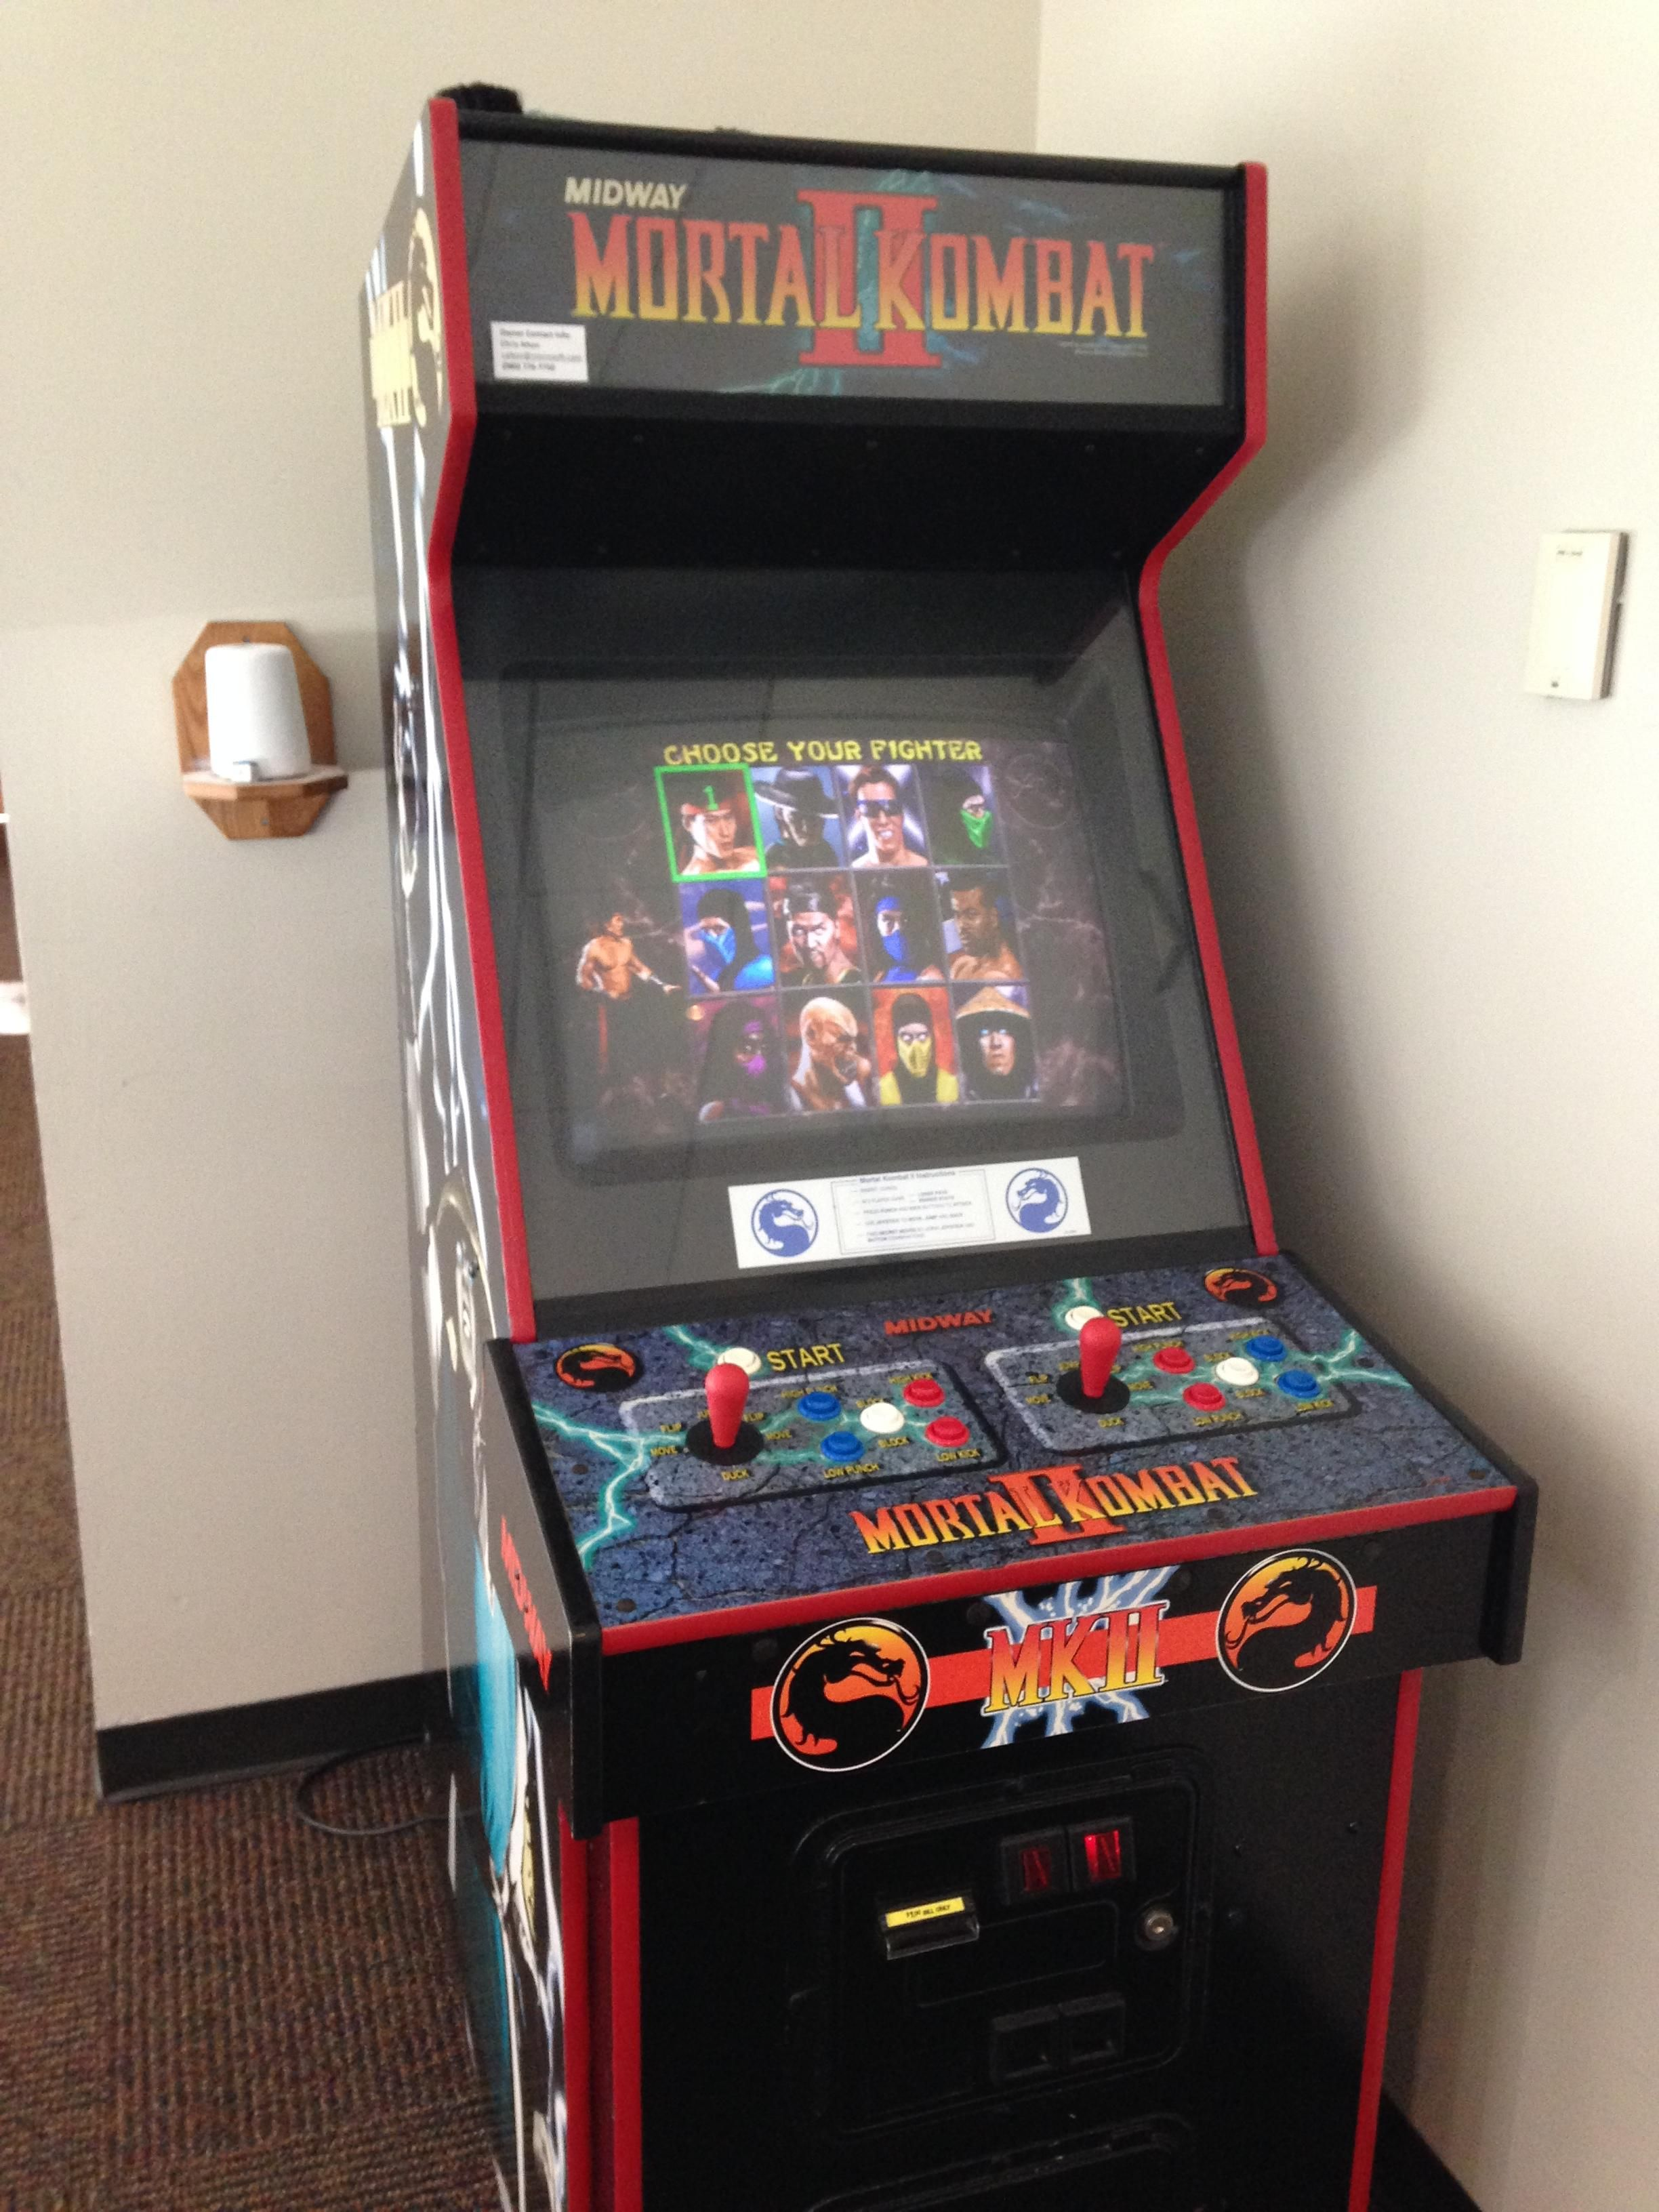 Mortal Kombat II Arcade Machine | Gaming-Related Photos ...